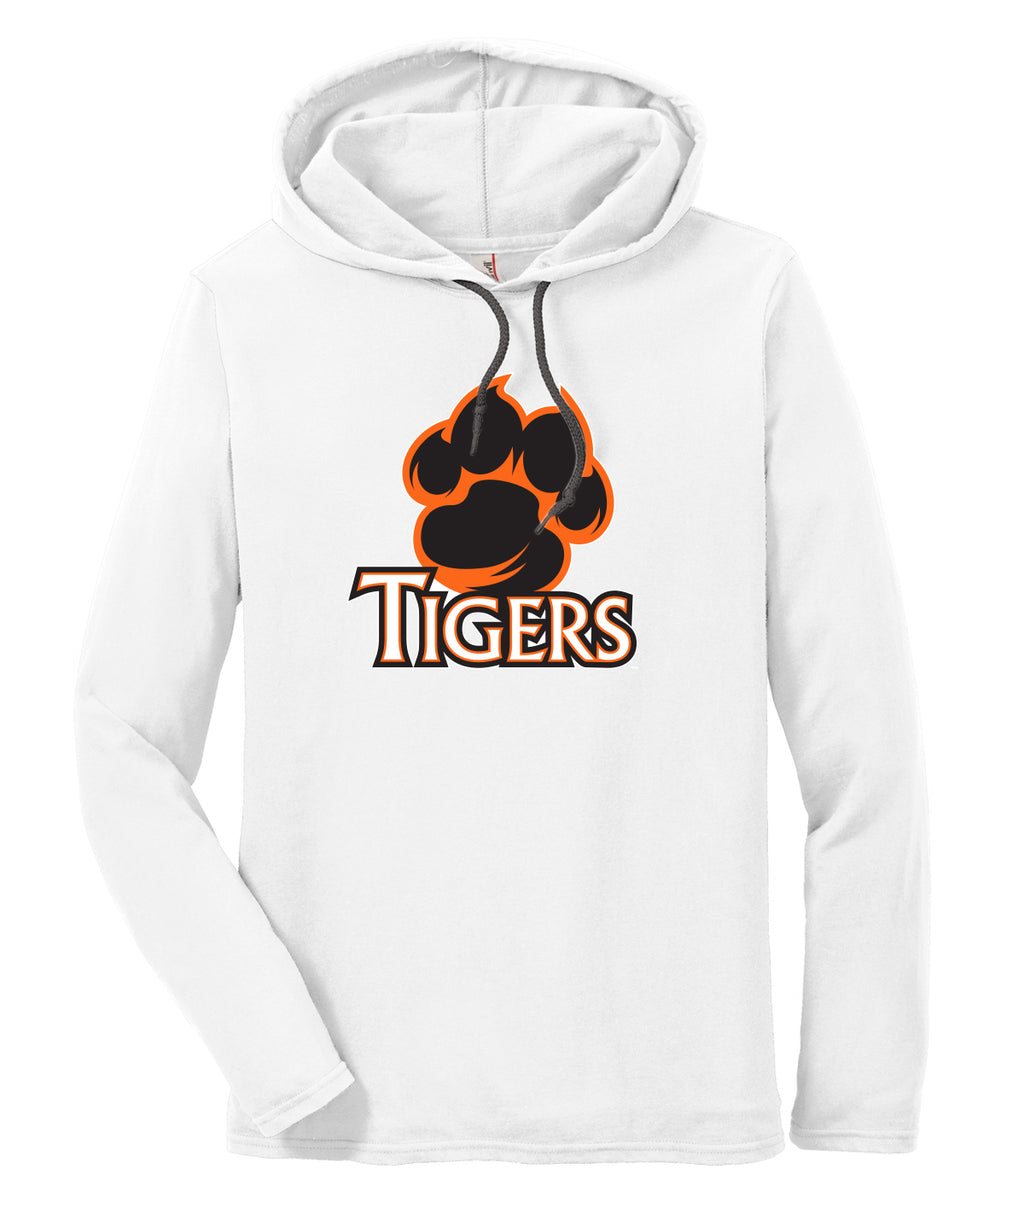 Tigers Long Sleeve Hooded Tee